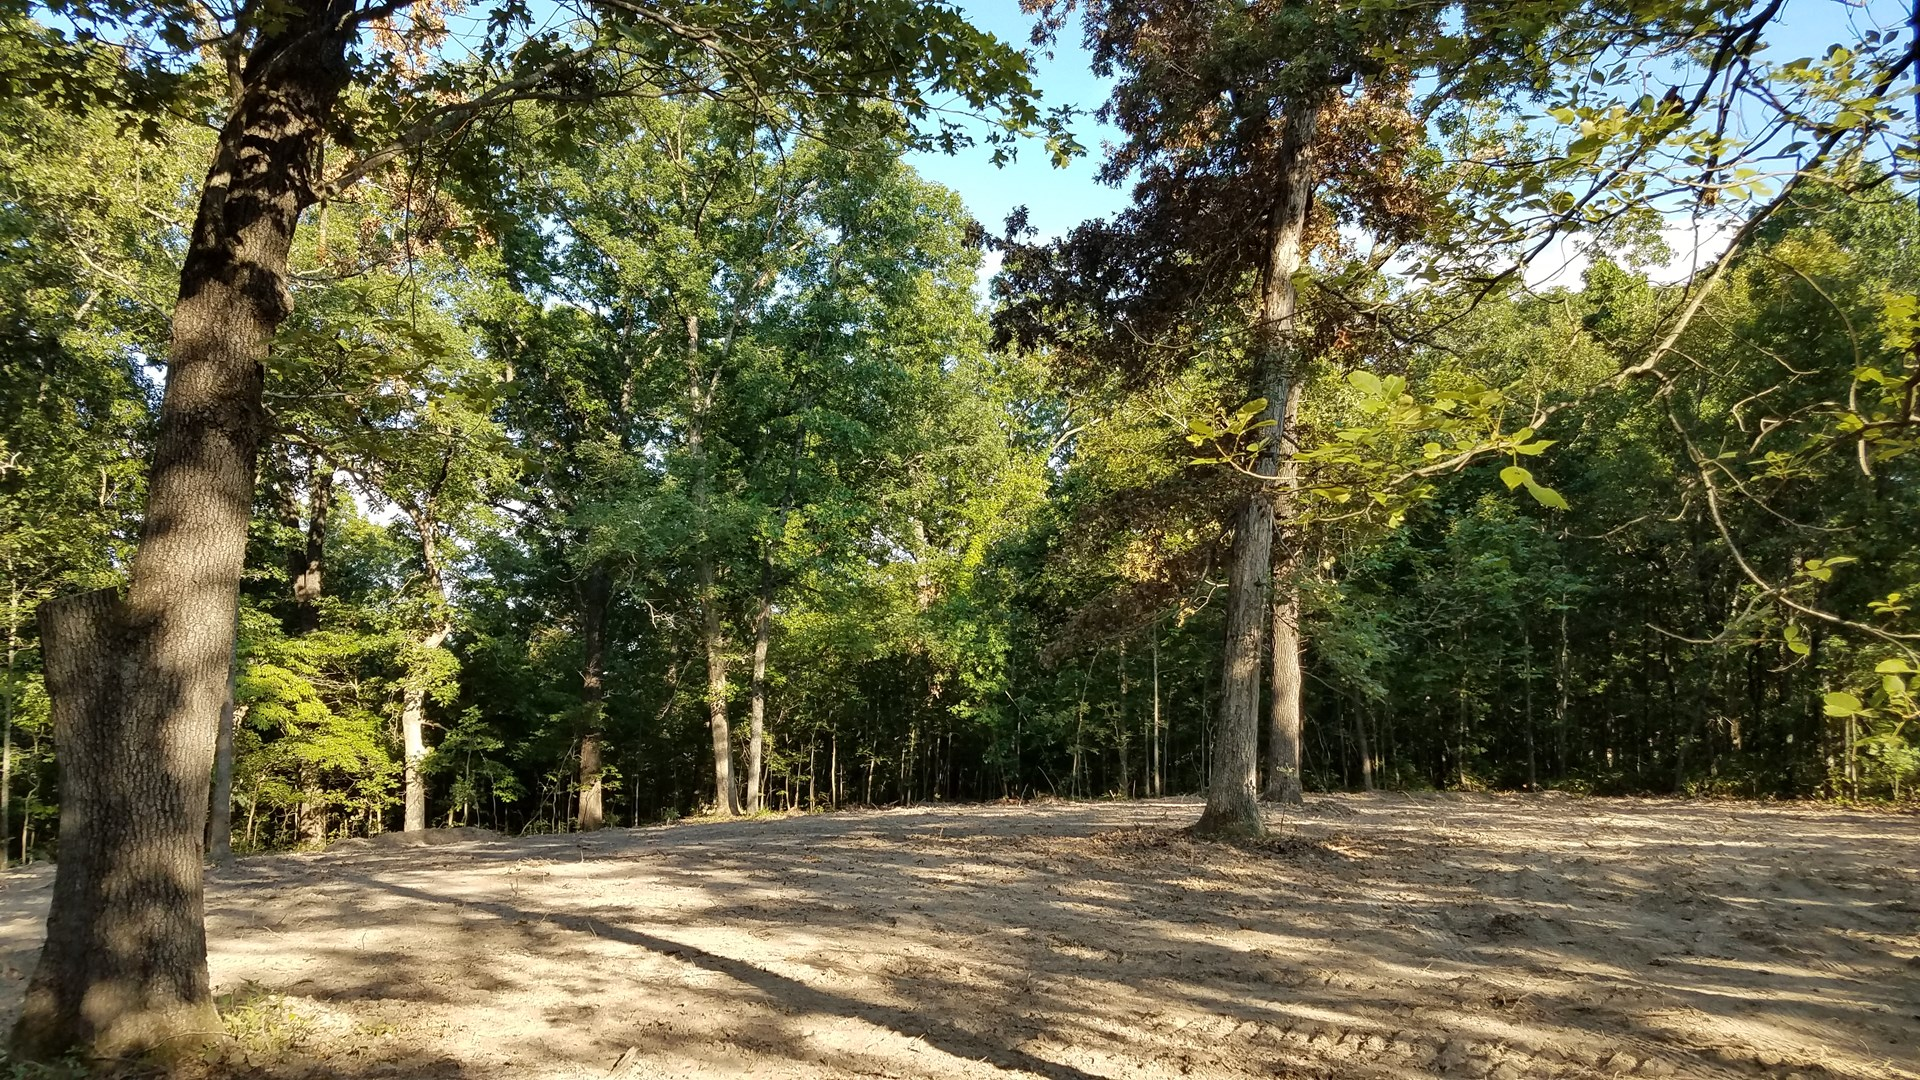 Missouri Land For Sale! 18 Acr W/ Electricity! Camp orBuild!